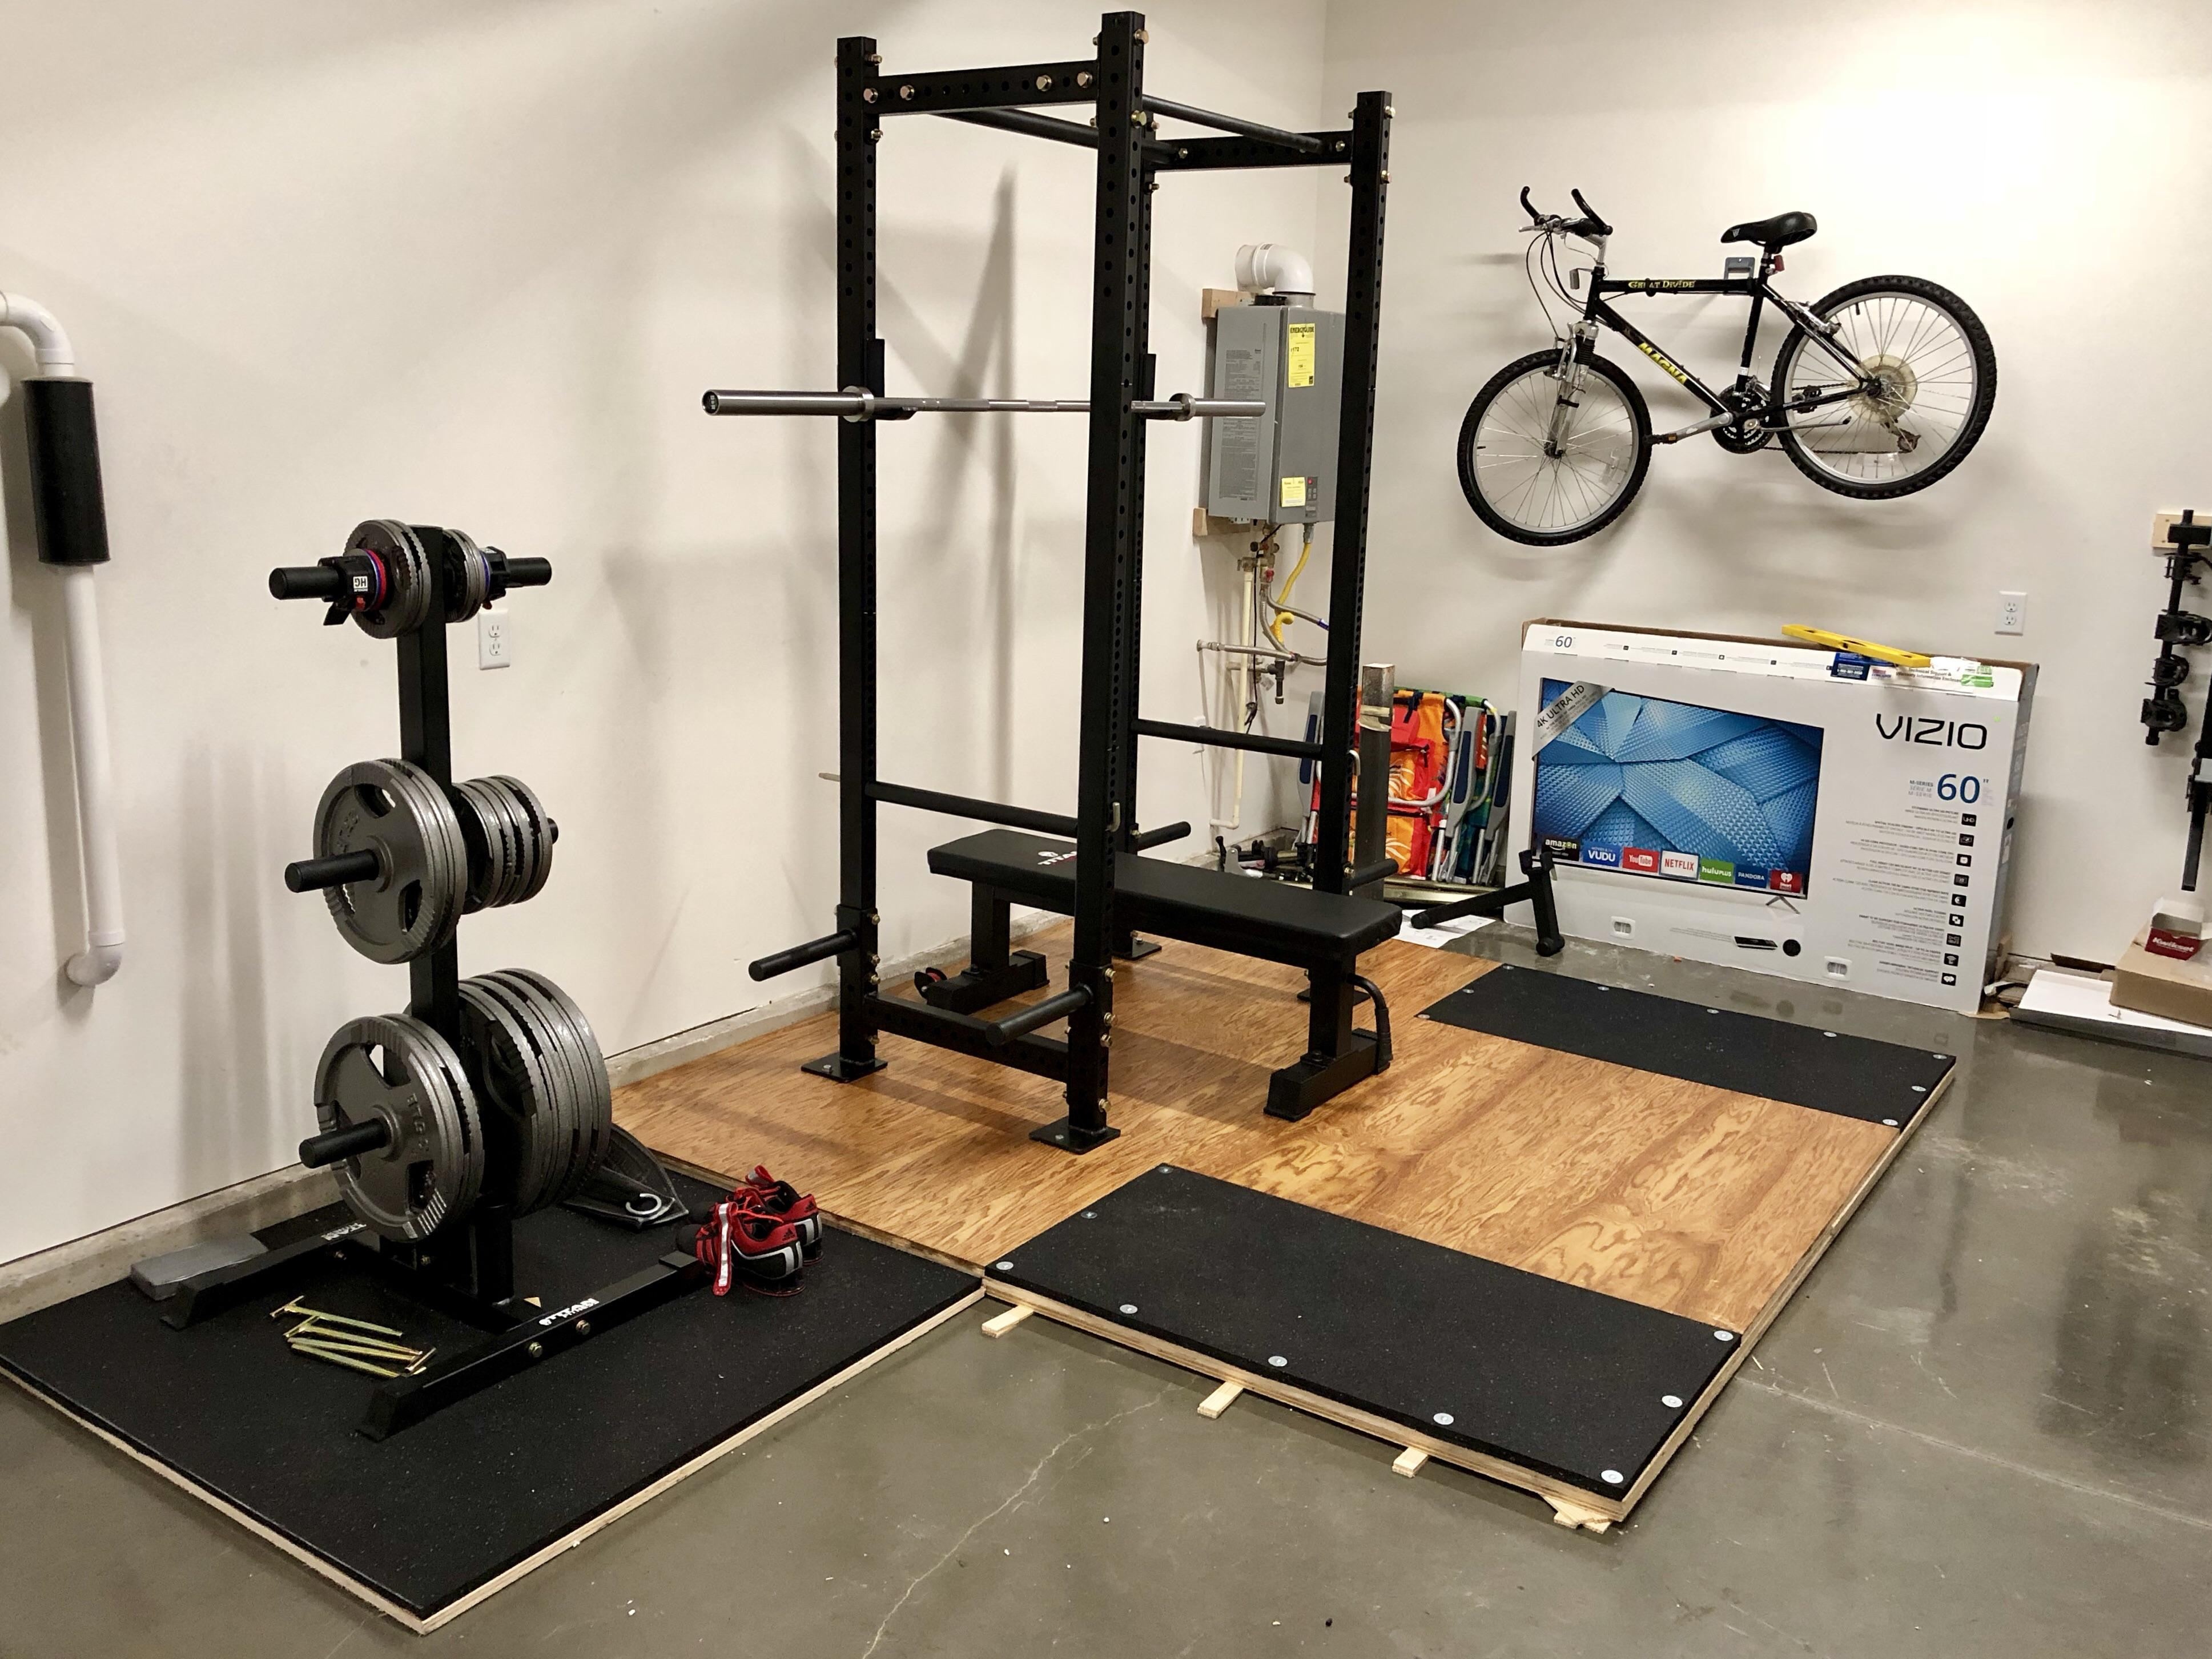 Interior Design Reddit Home Gym Or Gym Membership Reddit Architecture Home Design